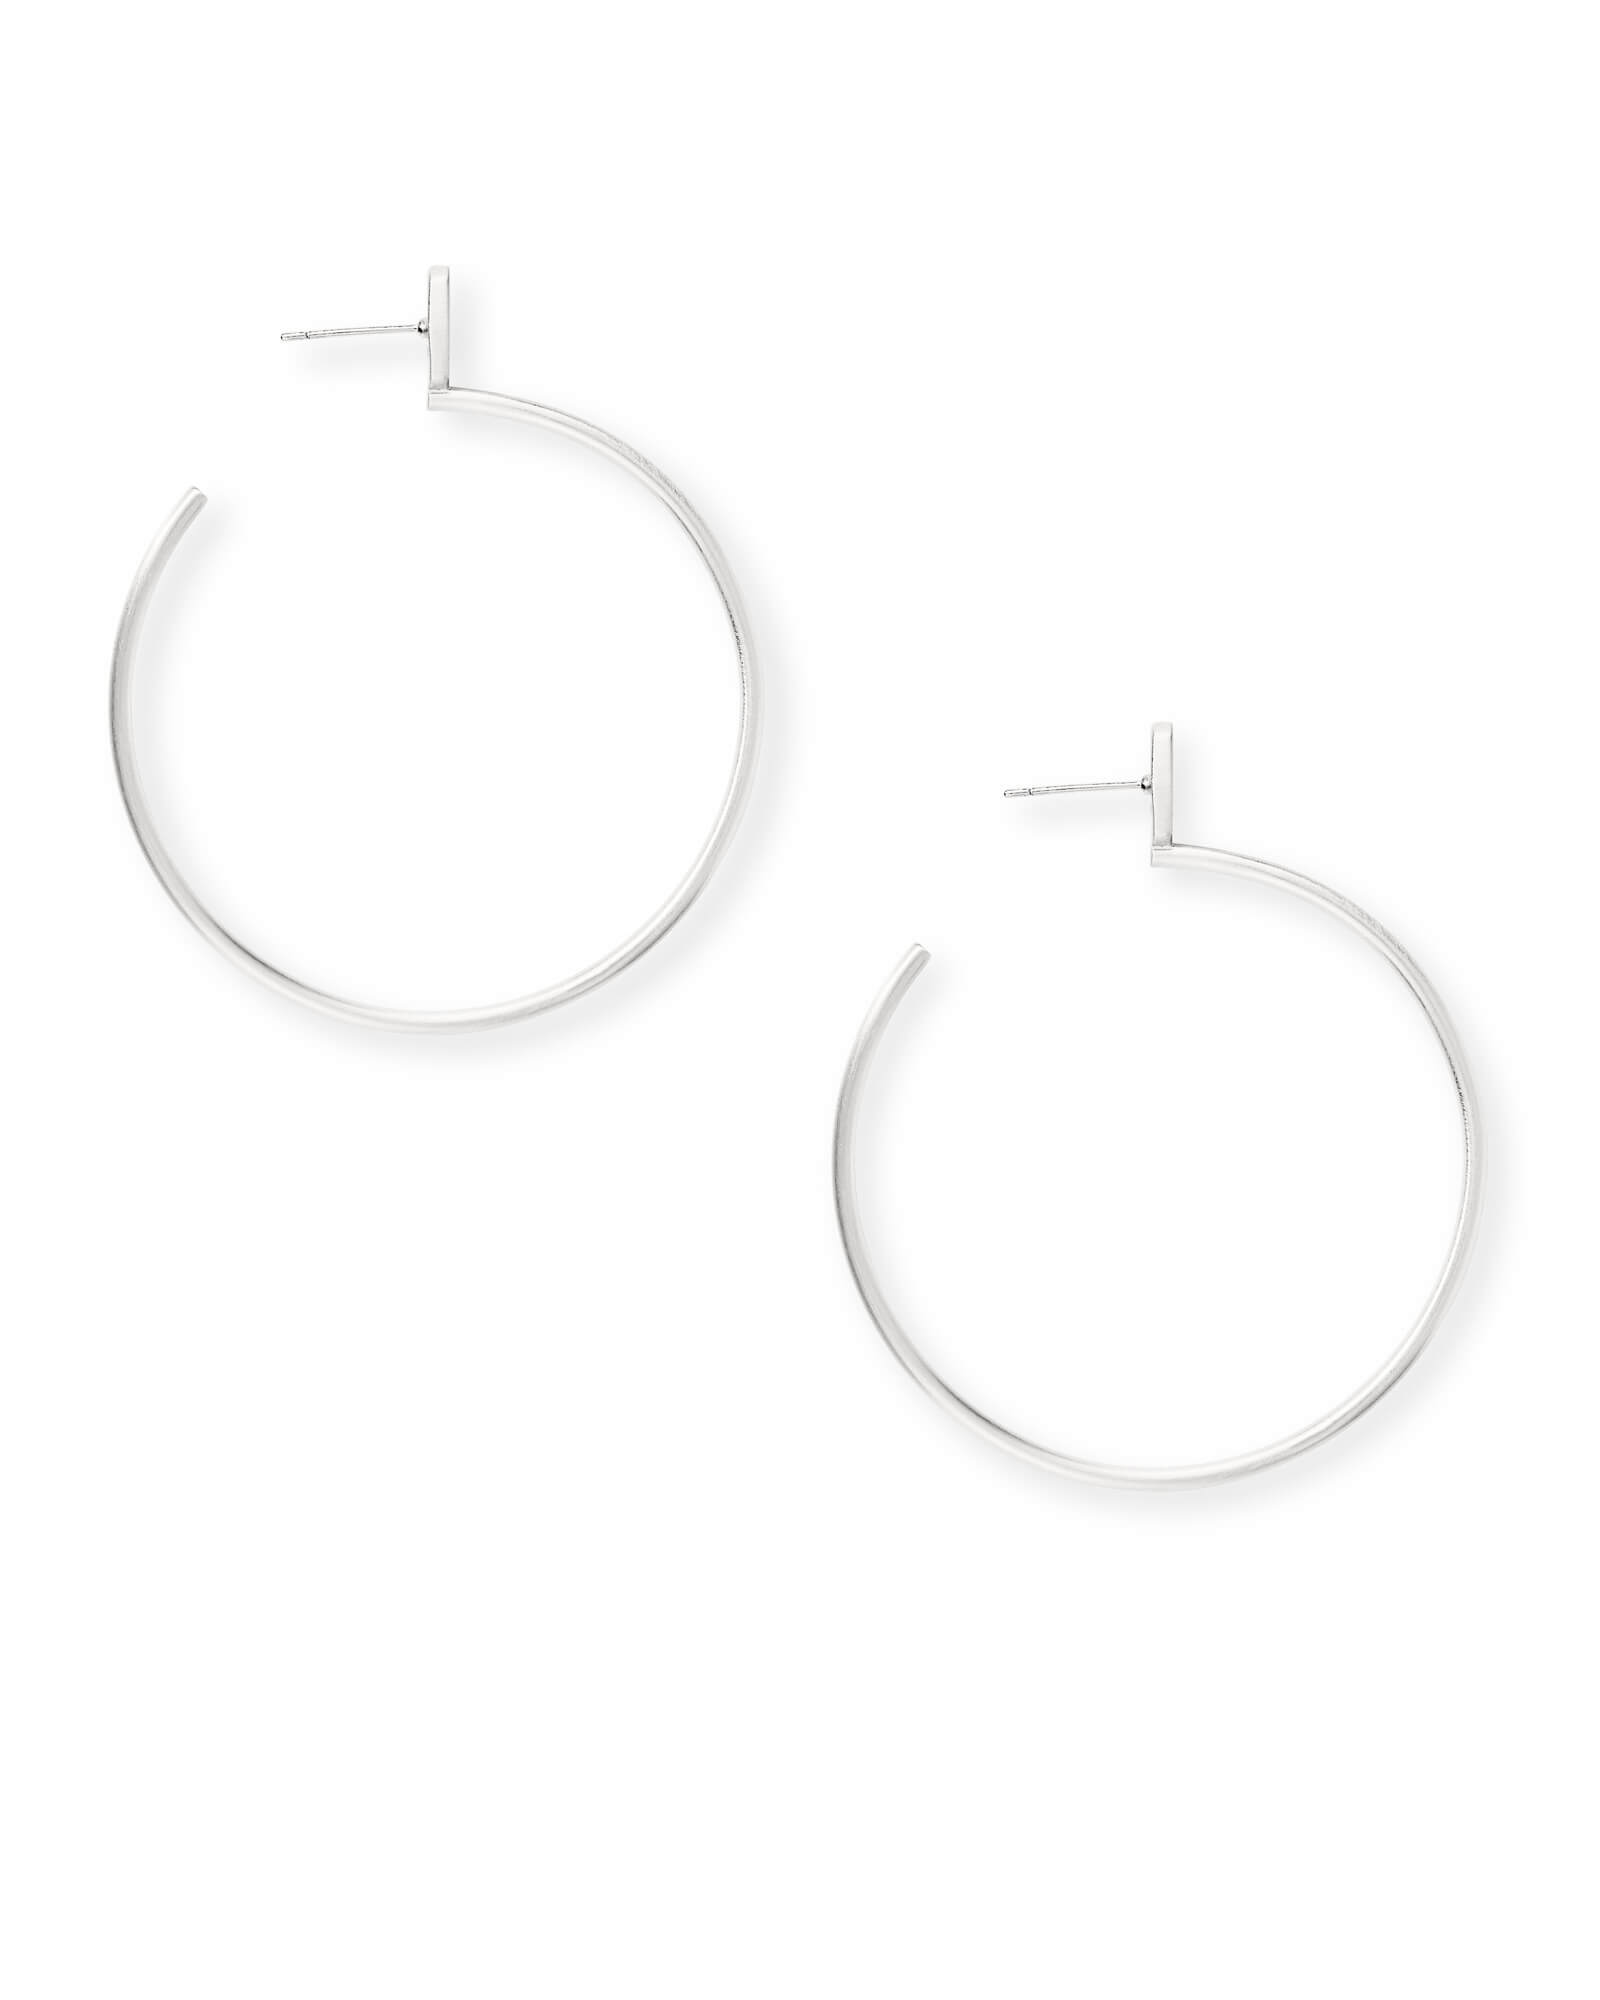 Pepper Hoop Earrings in Bright Silver